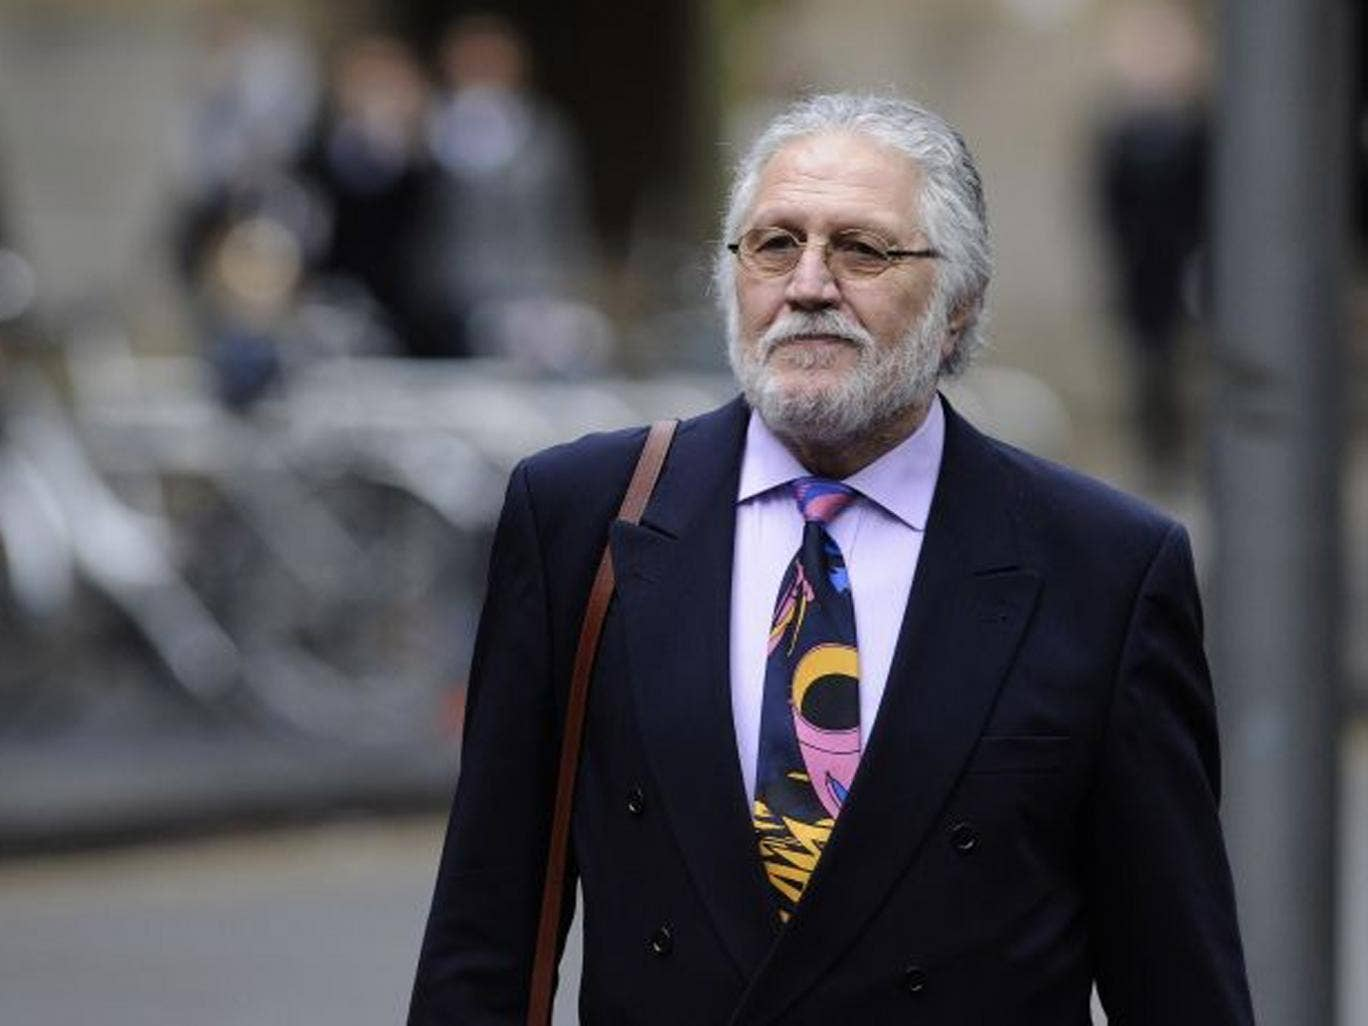 Dave Lee Travis, whose real name is David Patrick Griffin, arrives at Southwark Crown Court on 17 January 17 2014